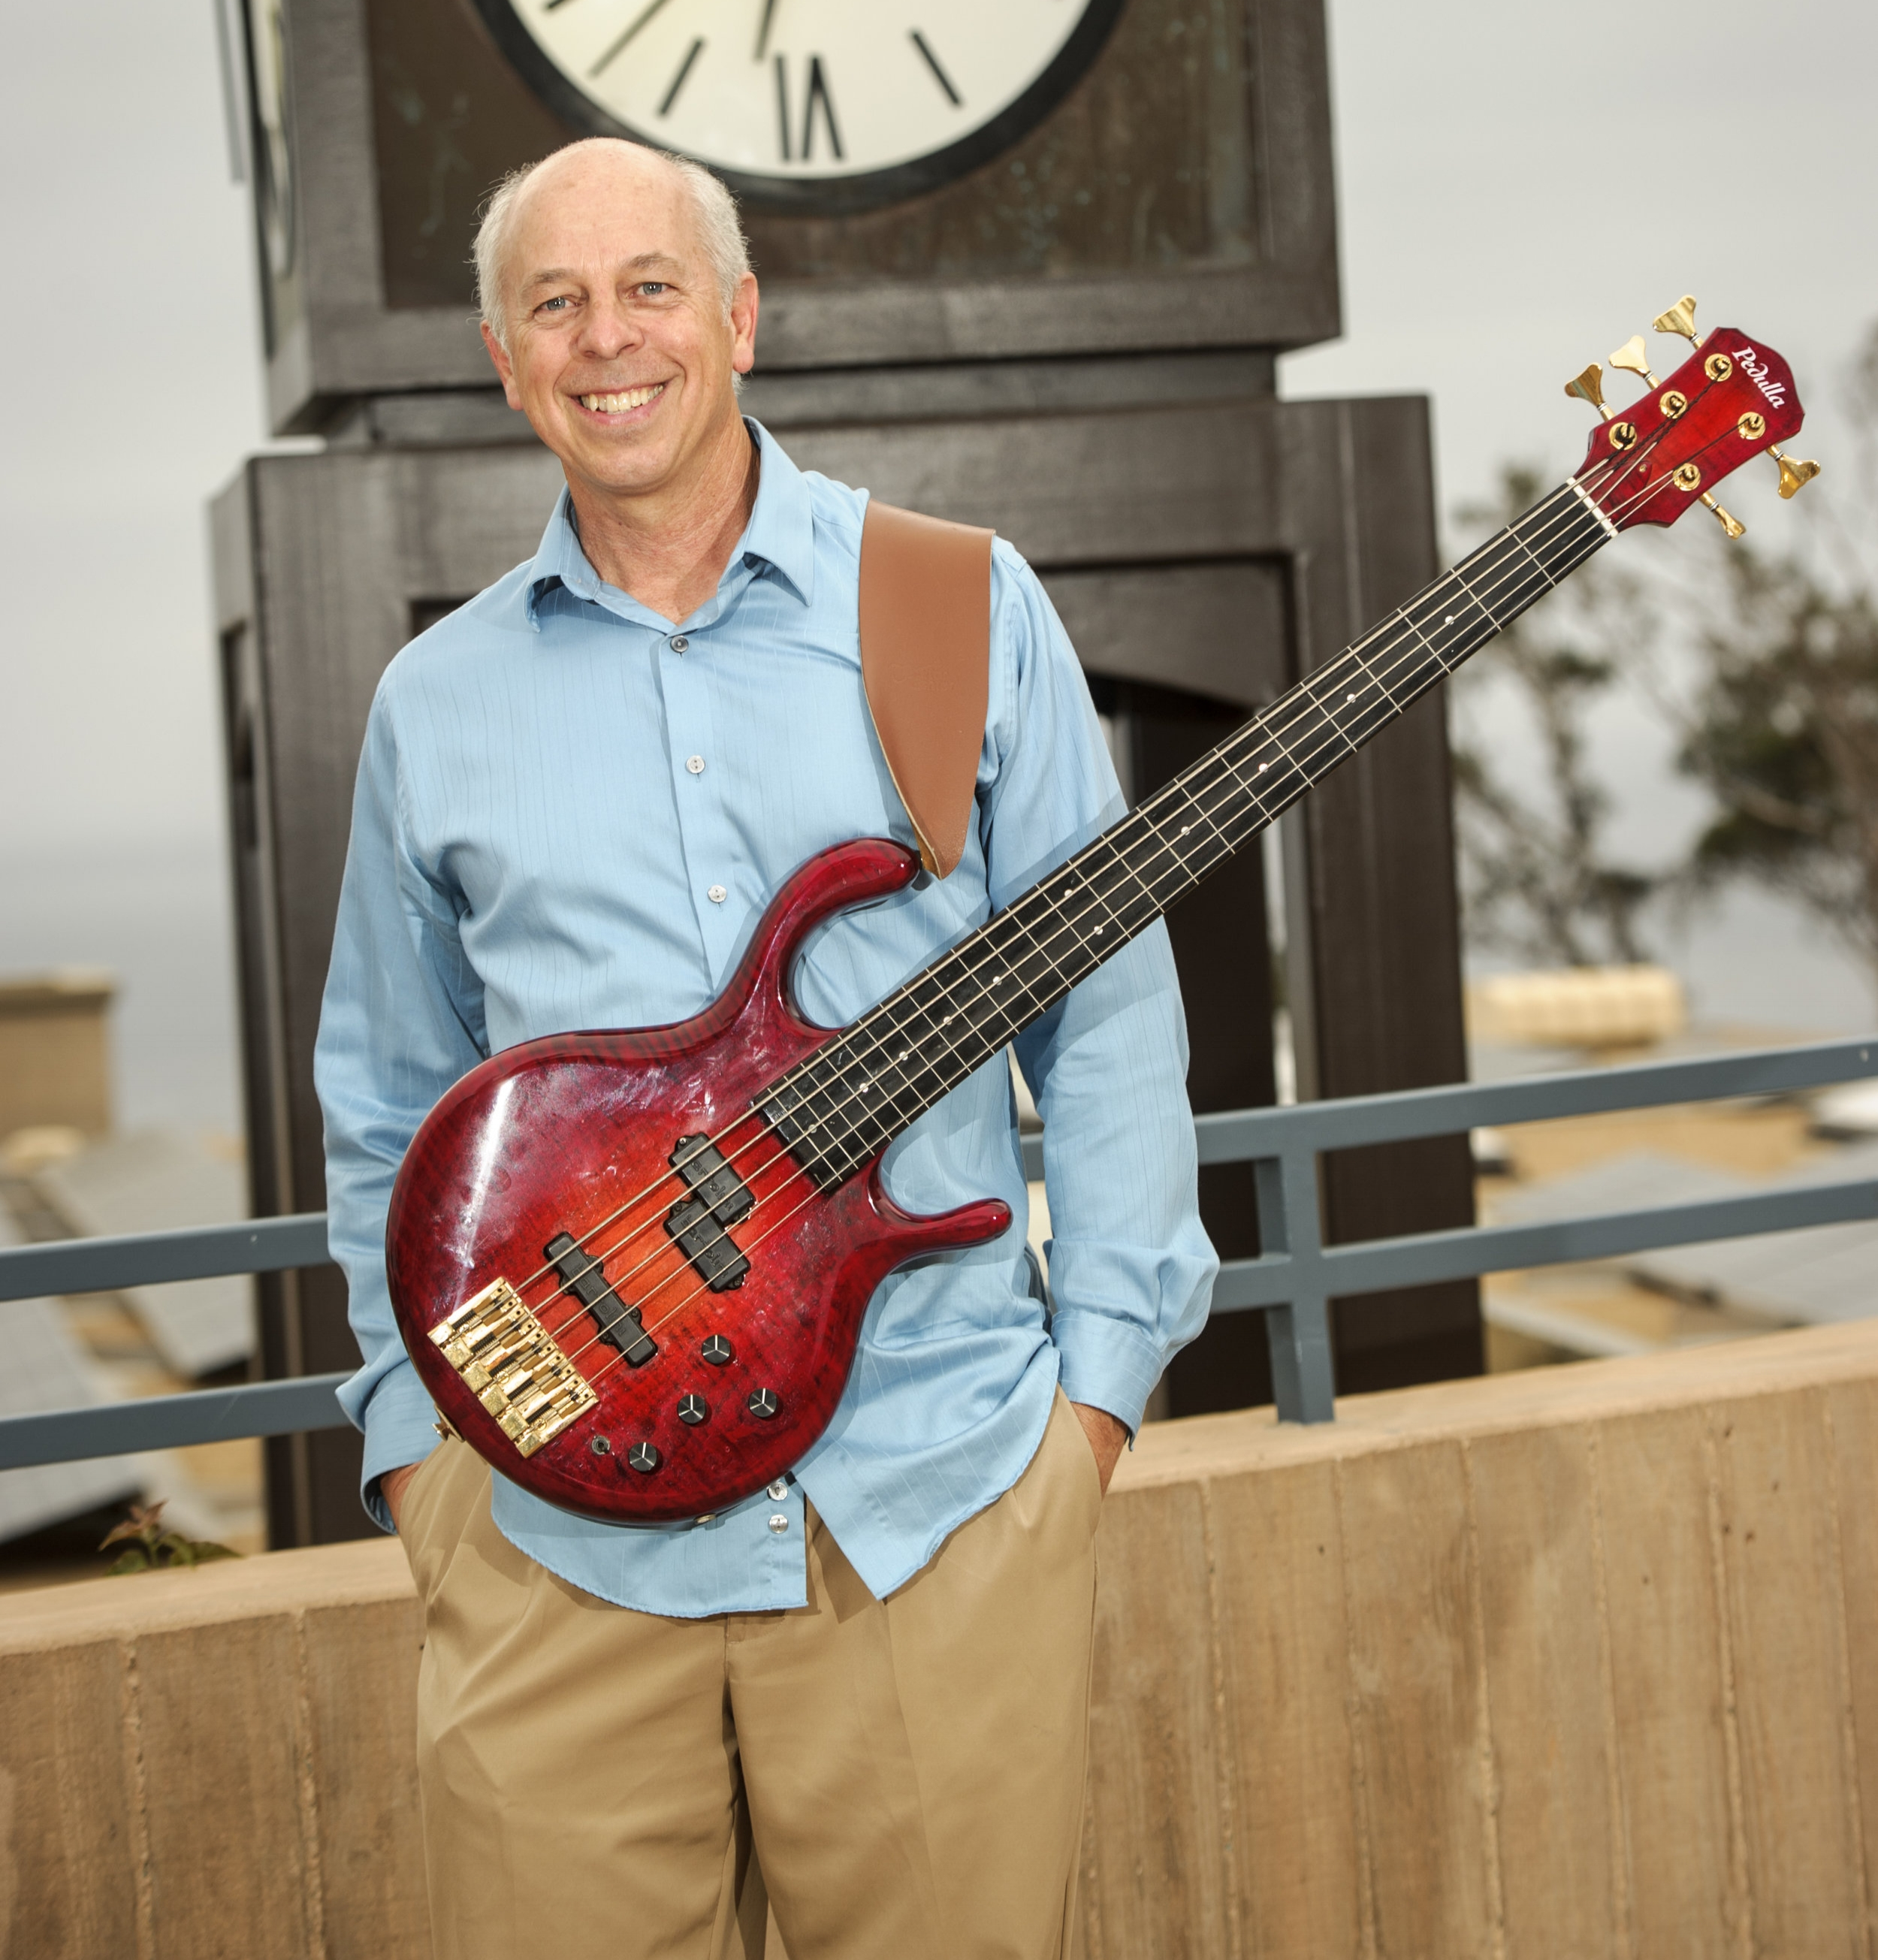 Lance Jeppesen - BASSDr. Lance Jeppesen, a California native, has been playing bass since his early teens. Lance briefly attended Utah State University on a music scholarship but left to the calling of a good road gig. He has played many different genres of music since then and has traveled extensively in his music career throughout North America, before settling in San Diego. He has shared venues with the likes of  Shirley Jones, Shelly Berman, Bernie Dresel, Dean Brown, Eric Marienthal, Bill Acosta to name but a few. He credits his influences being that of Stanley Clarke and Jaco Pastorius as changing his approach towards the bass and as well as music in general. By day, Lance manages a multidisciplinary medical office and practices chiropractic with his wife Jill-Ellen. He has been the bassist in The Ira B. Liss Big Band Jazz Machine since the late 1980's.